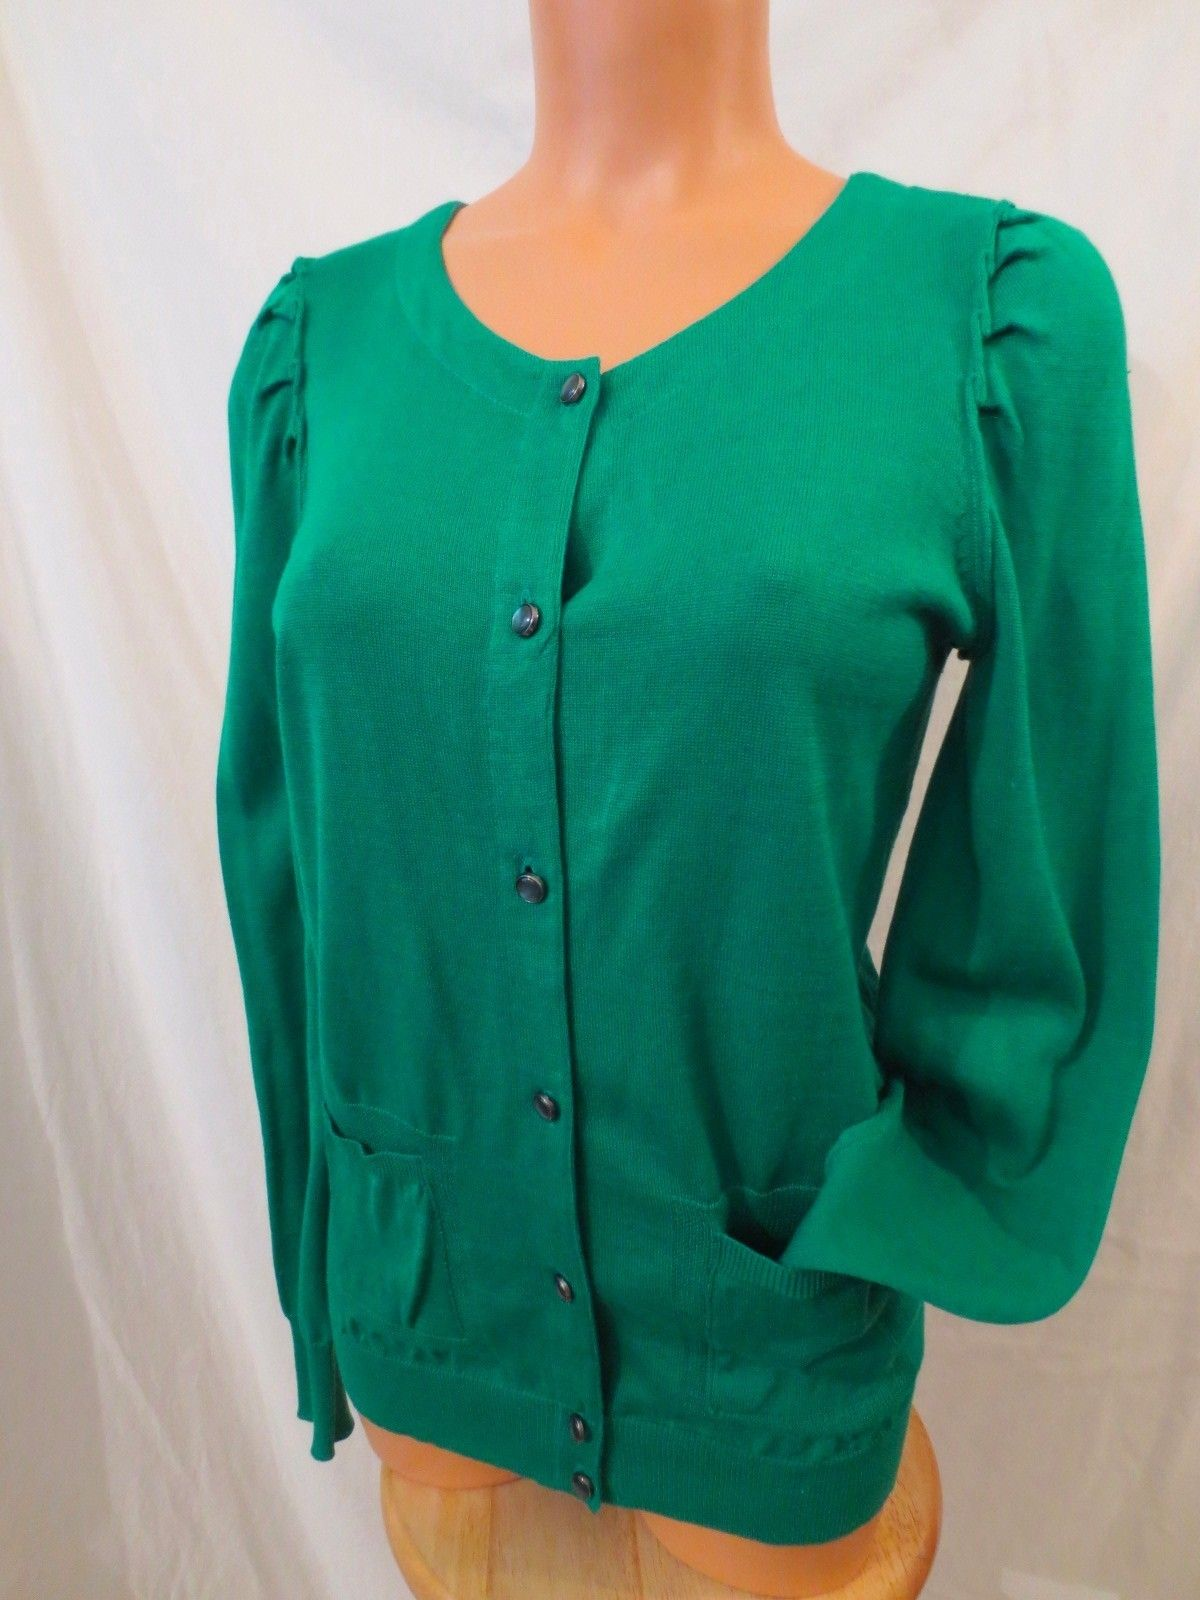 MARC by MARC JACOBS Green Cotton Cardigan Sweater - $24.99 at JOHNNY BOMBSHELL, free US shipping #marcjacobs #cardigan